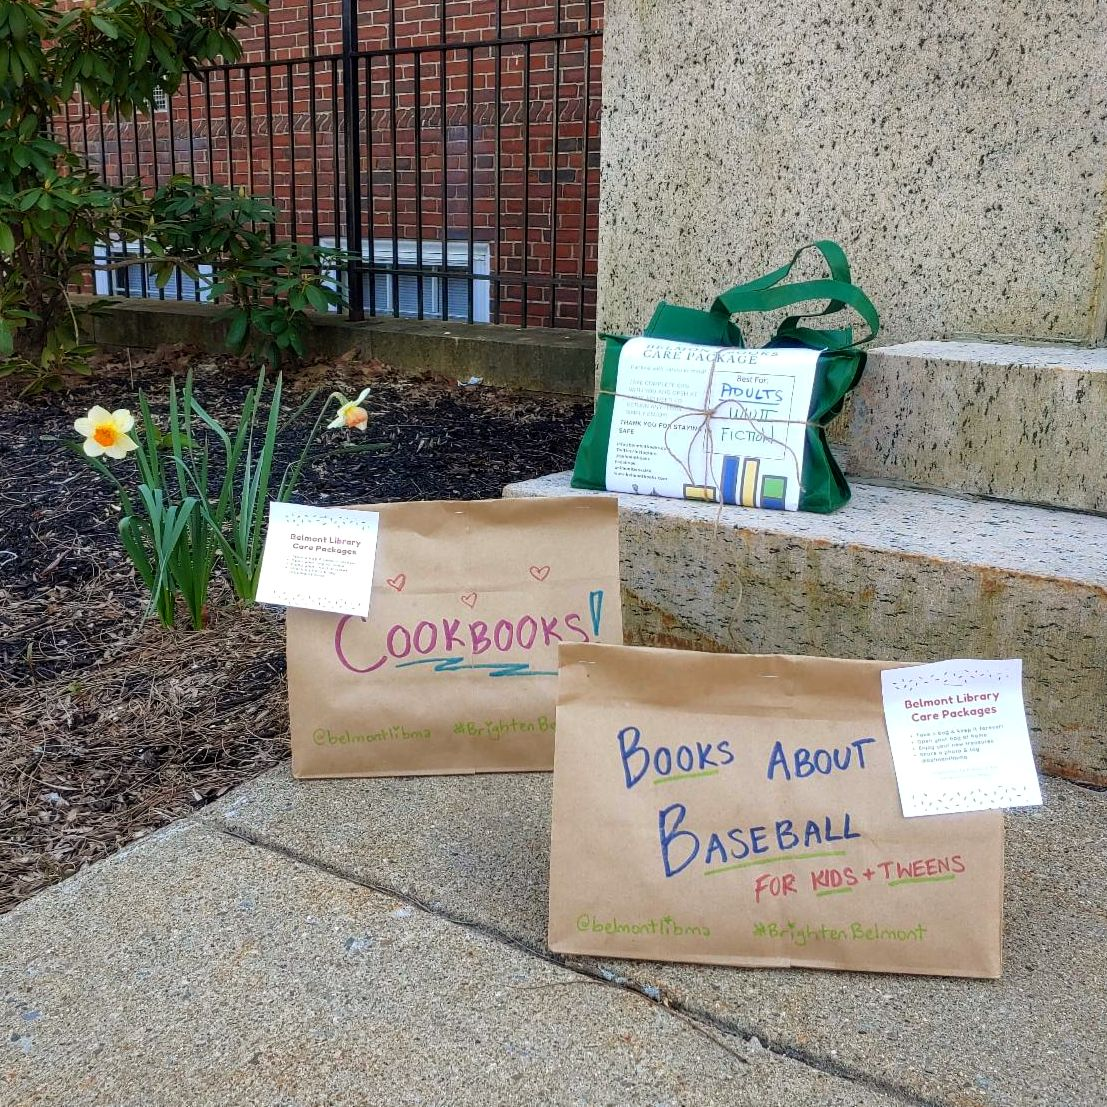 3 bags of books on stone steps with daffodils in the background.